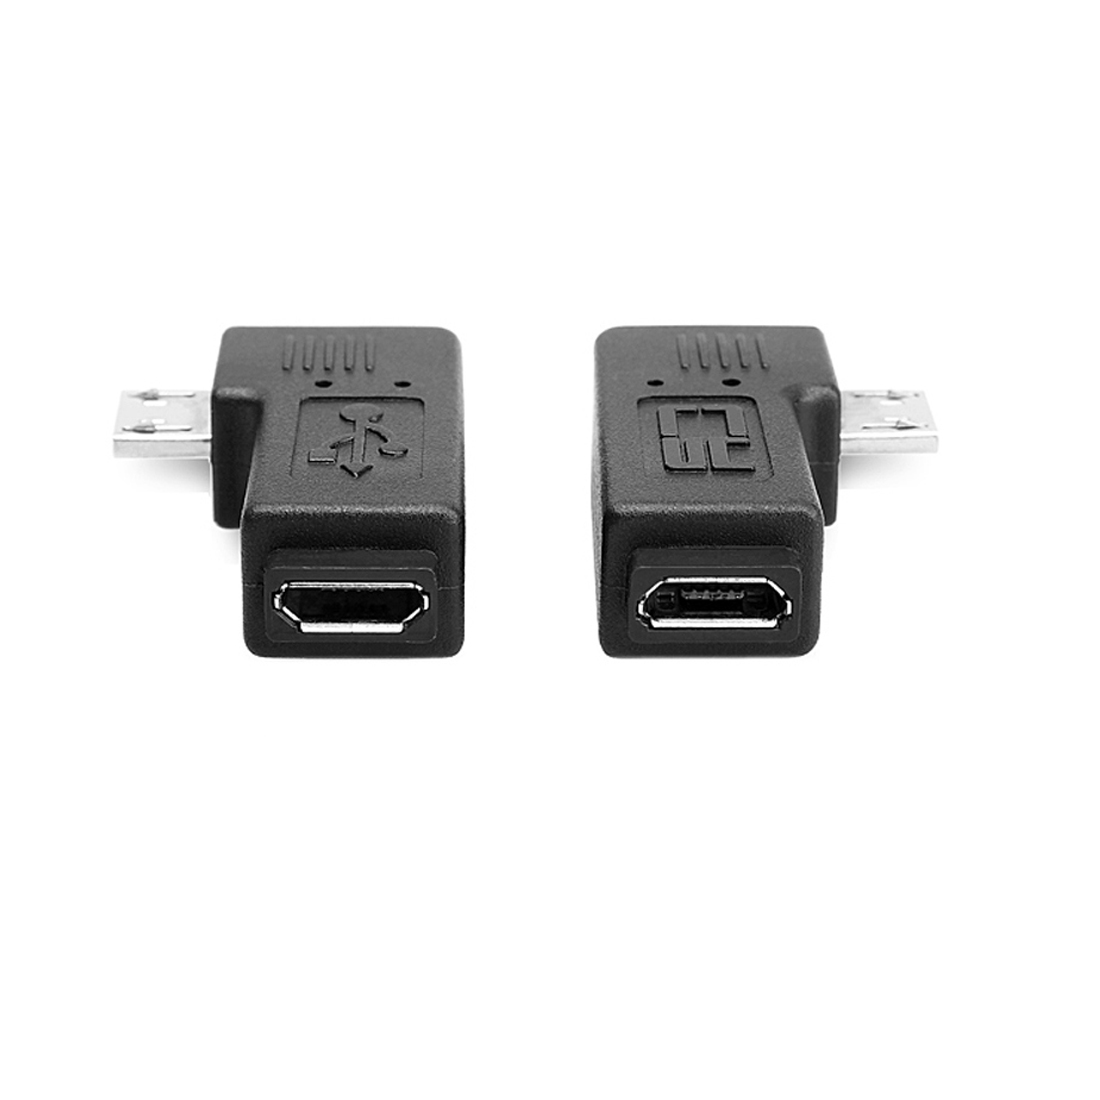 1 Pair Right Left Angle Micro USB Male 90 Degree USB Male To Micro Female Plug Adapters купить